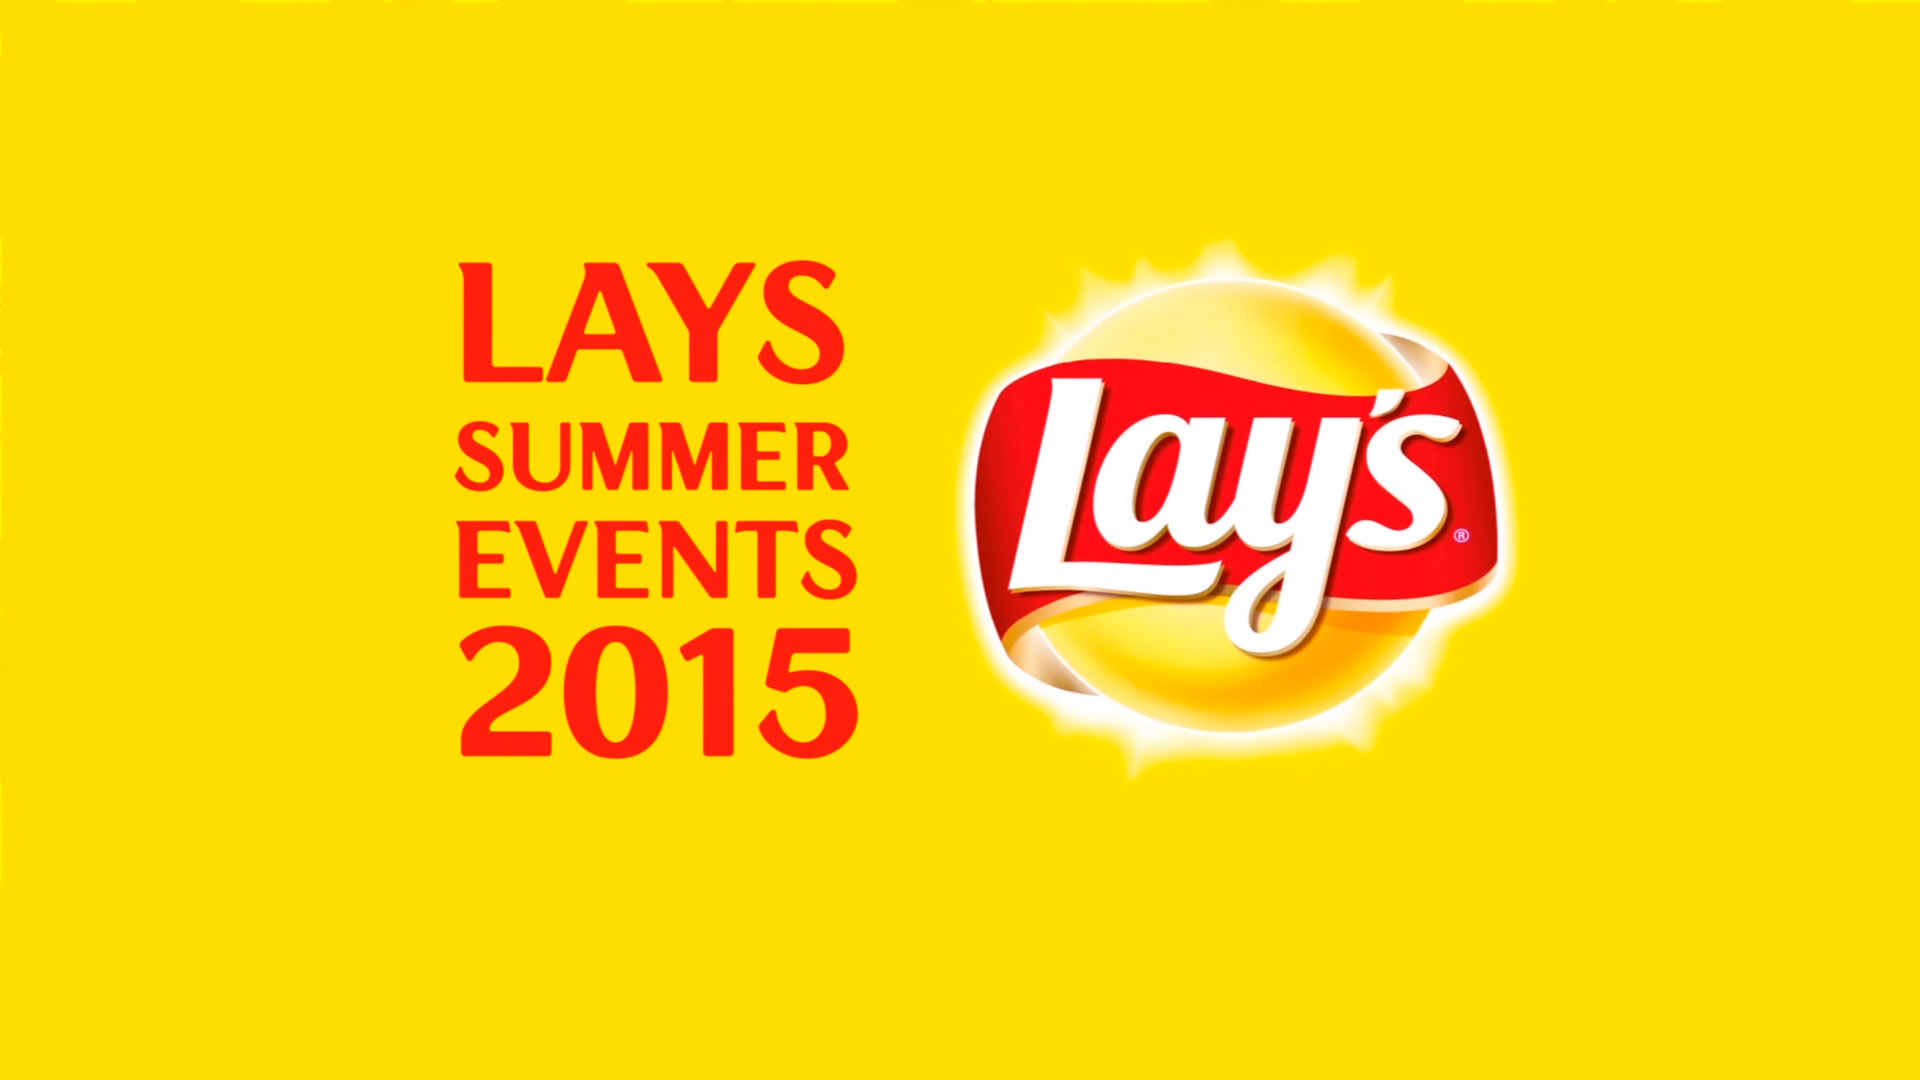 Lays summer events 2015 on Behance